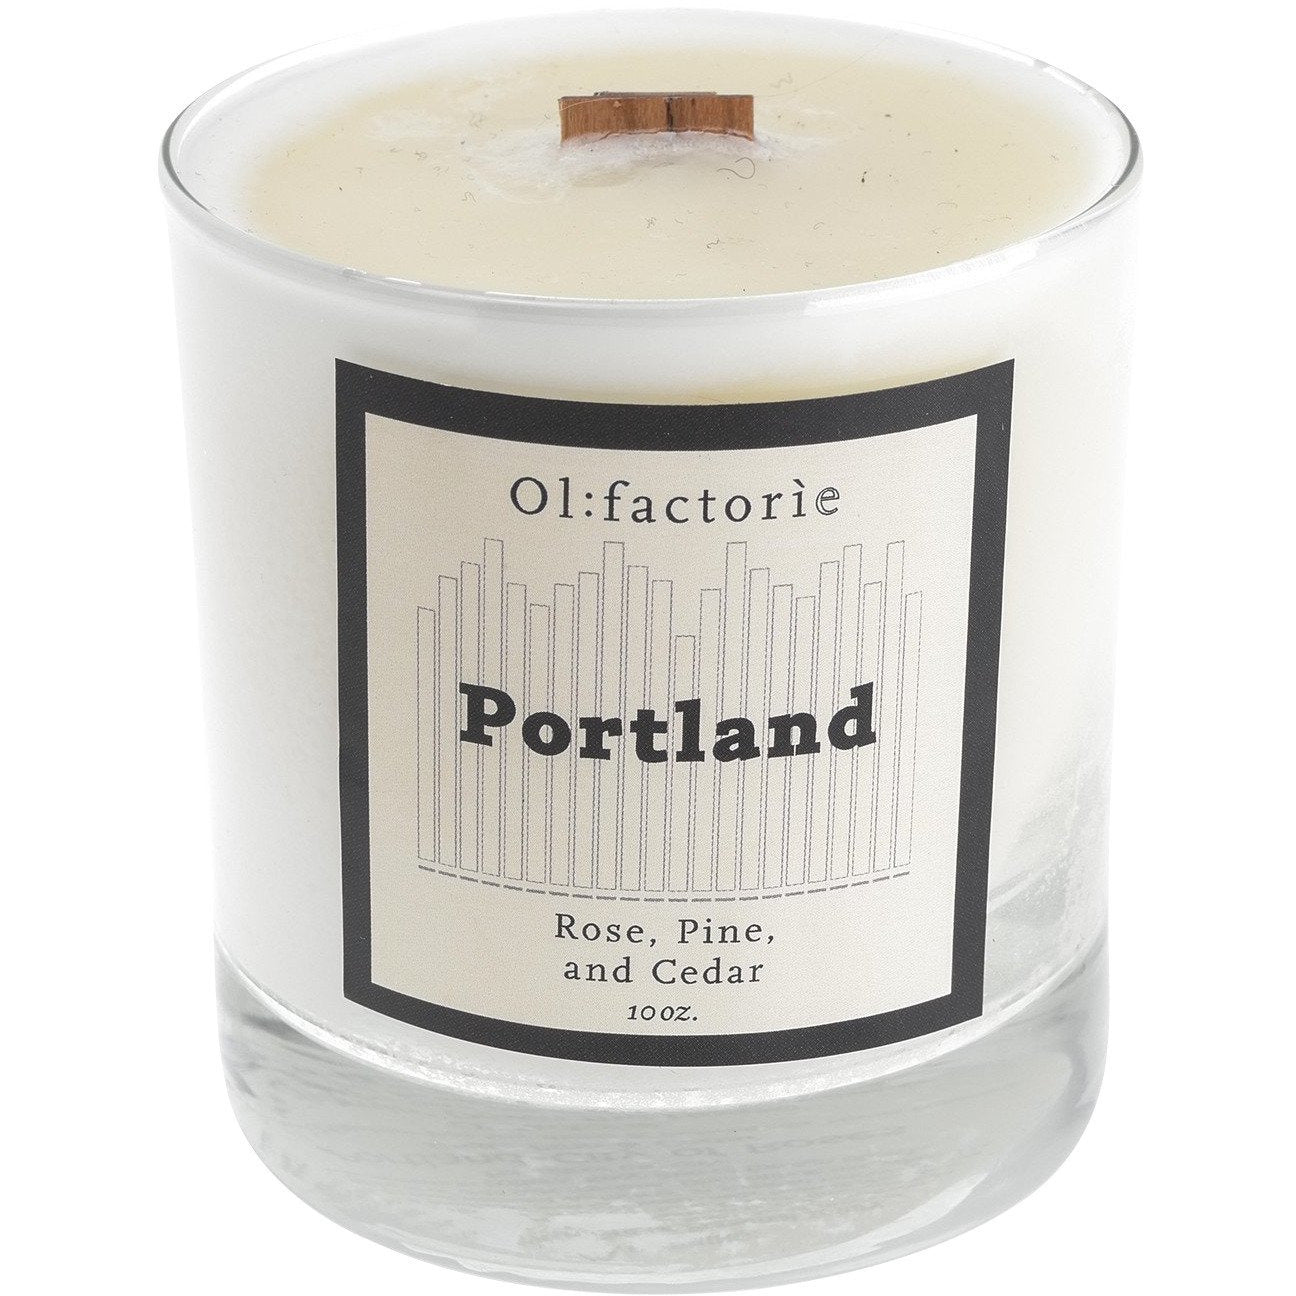 Portland Candle - Olfactorie Candles